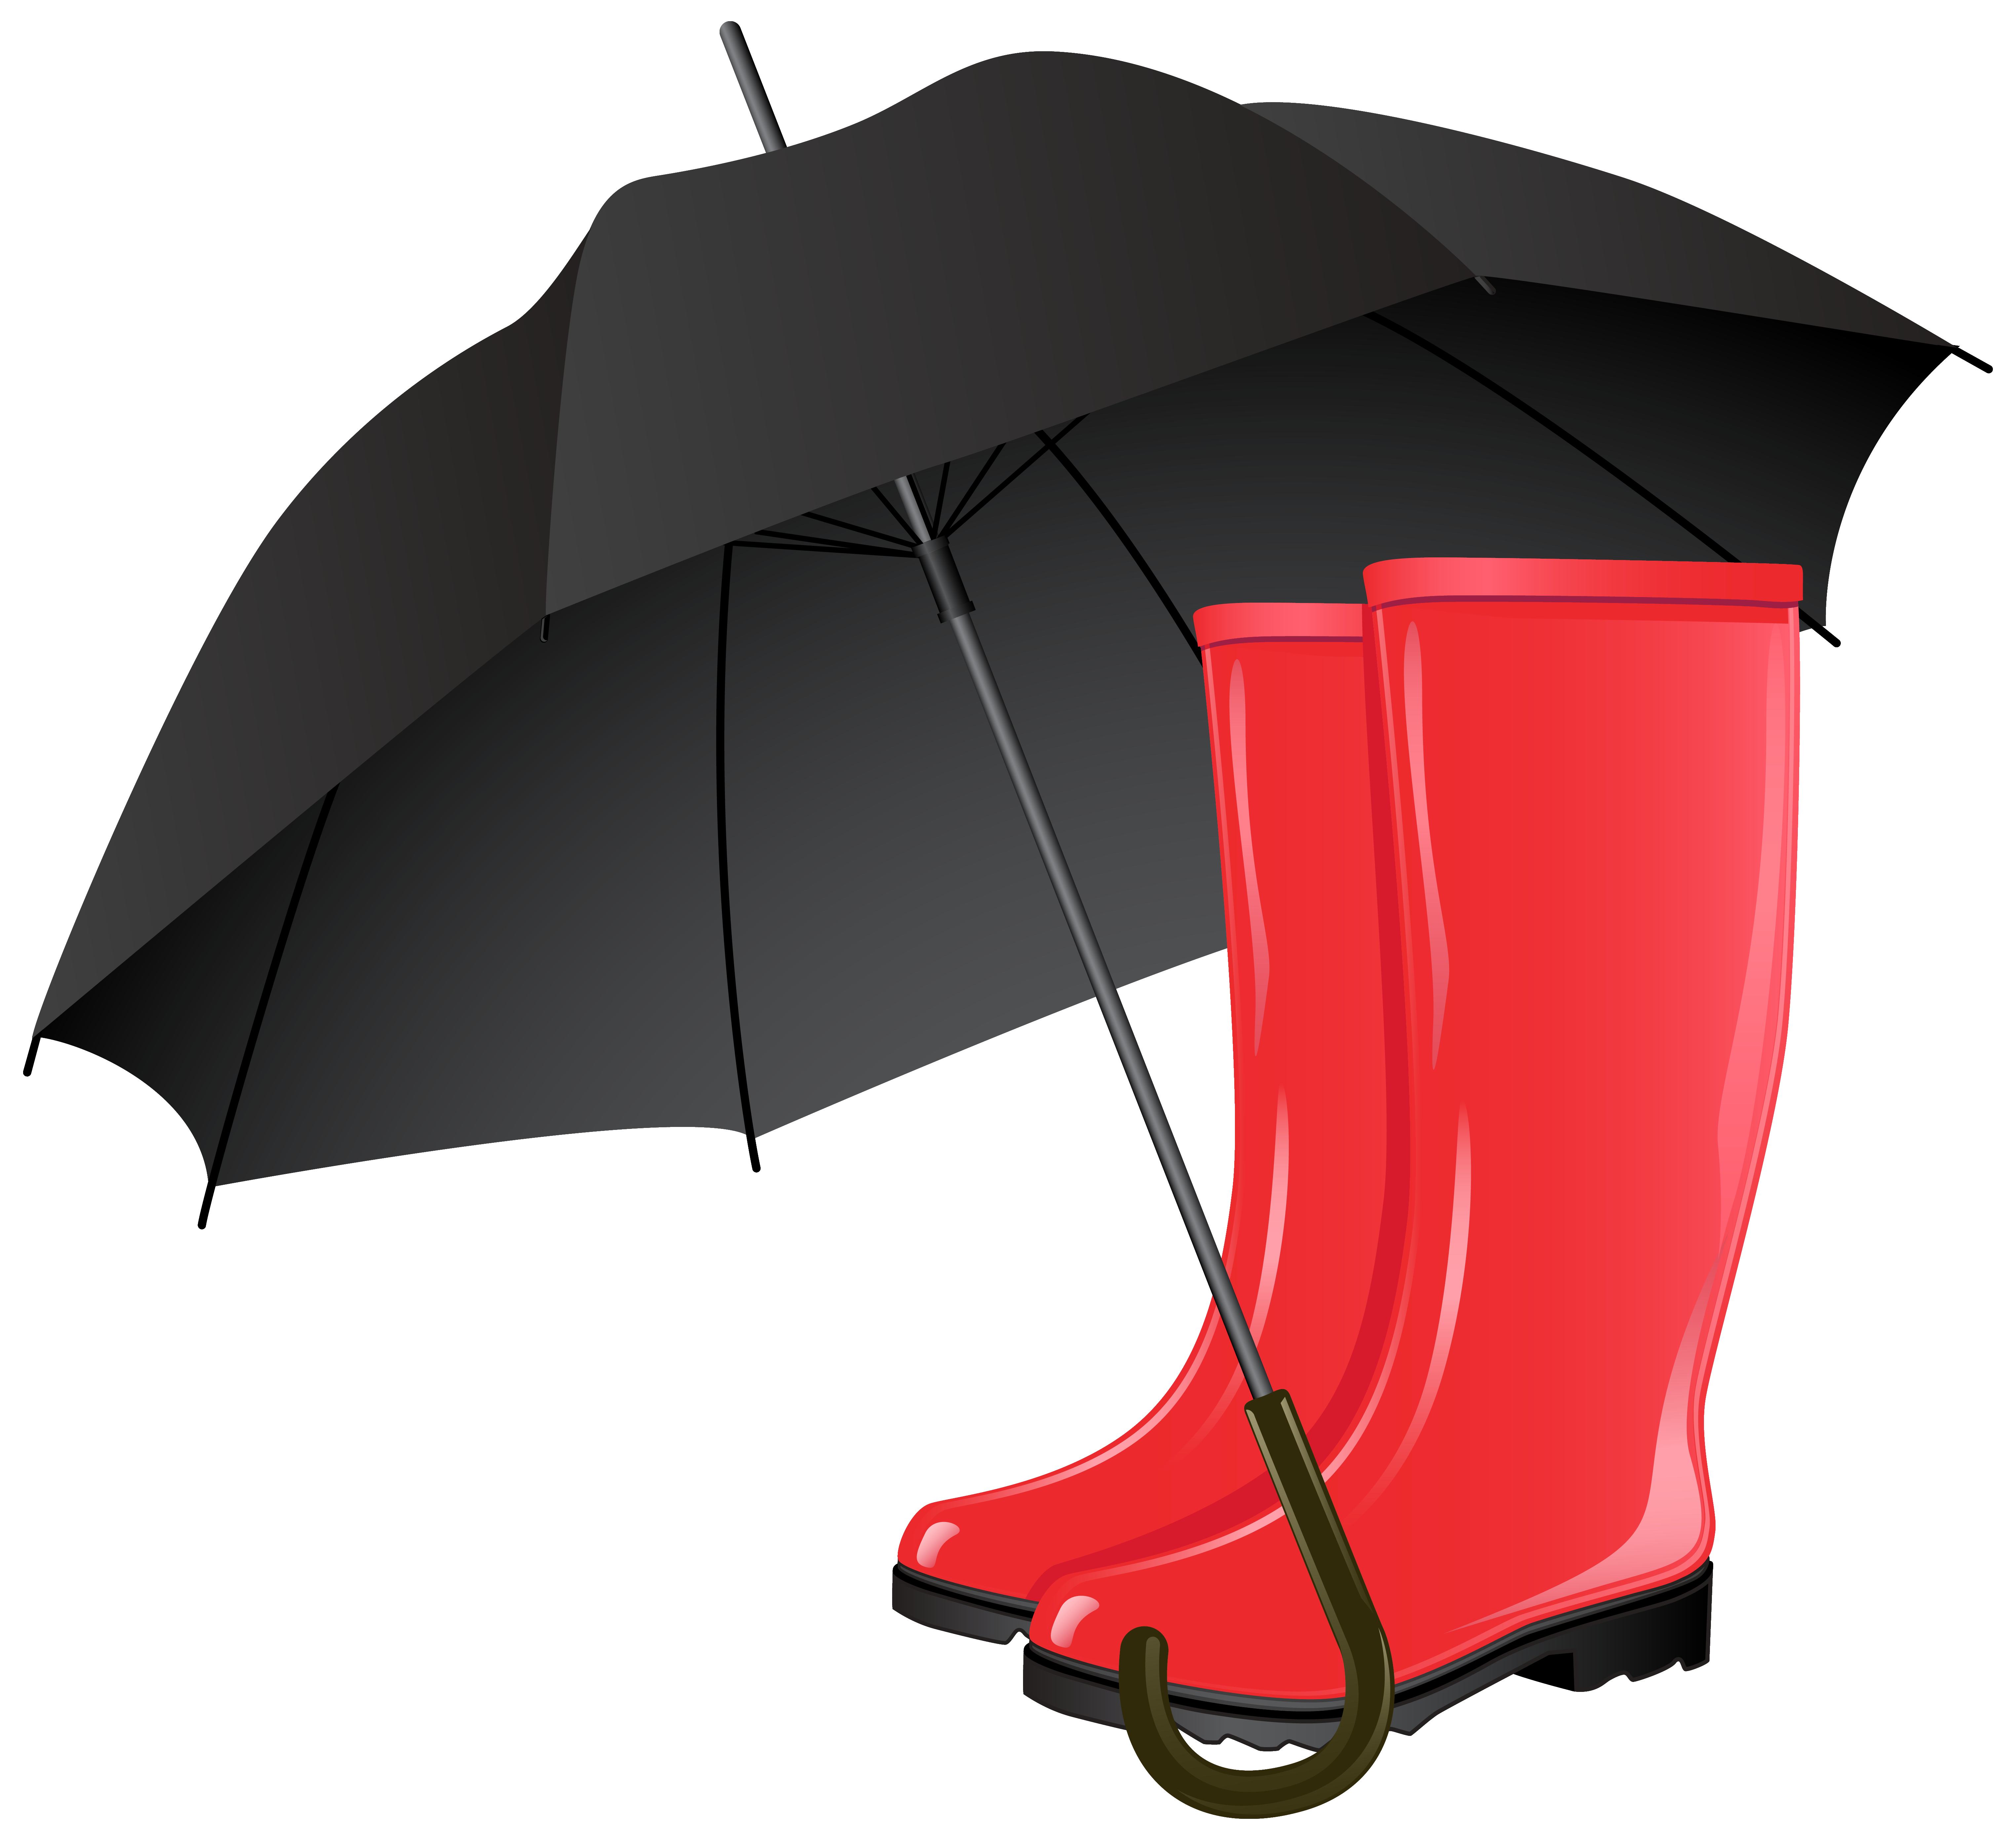 Rubber boots and png. Clipart umbrella autumn